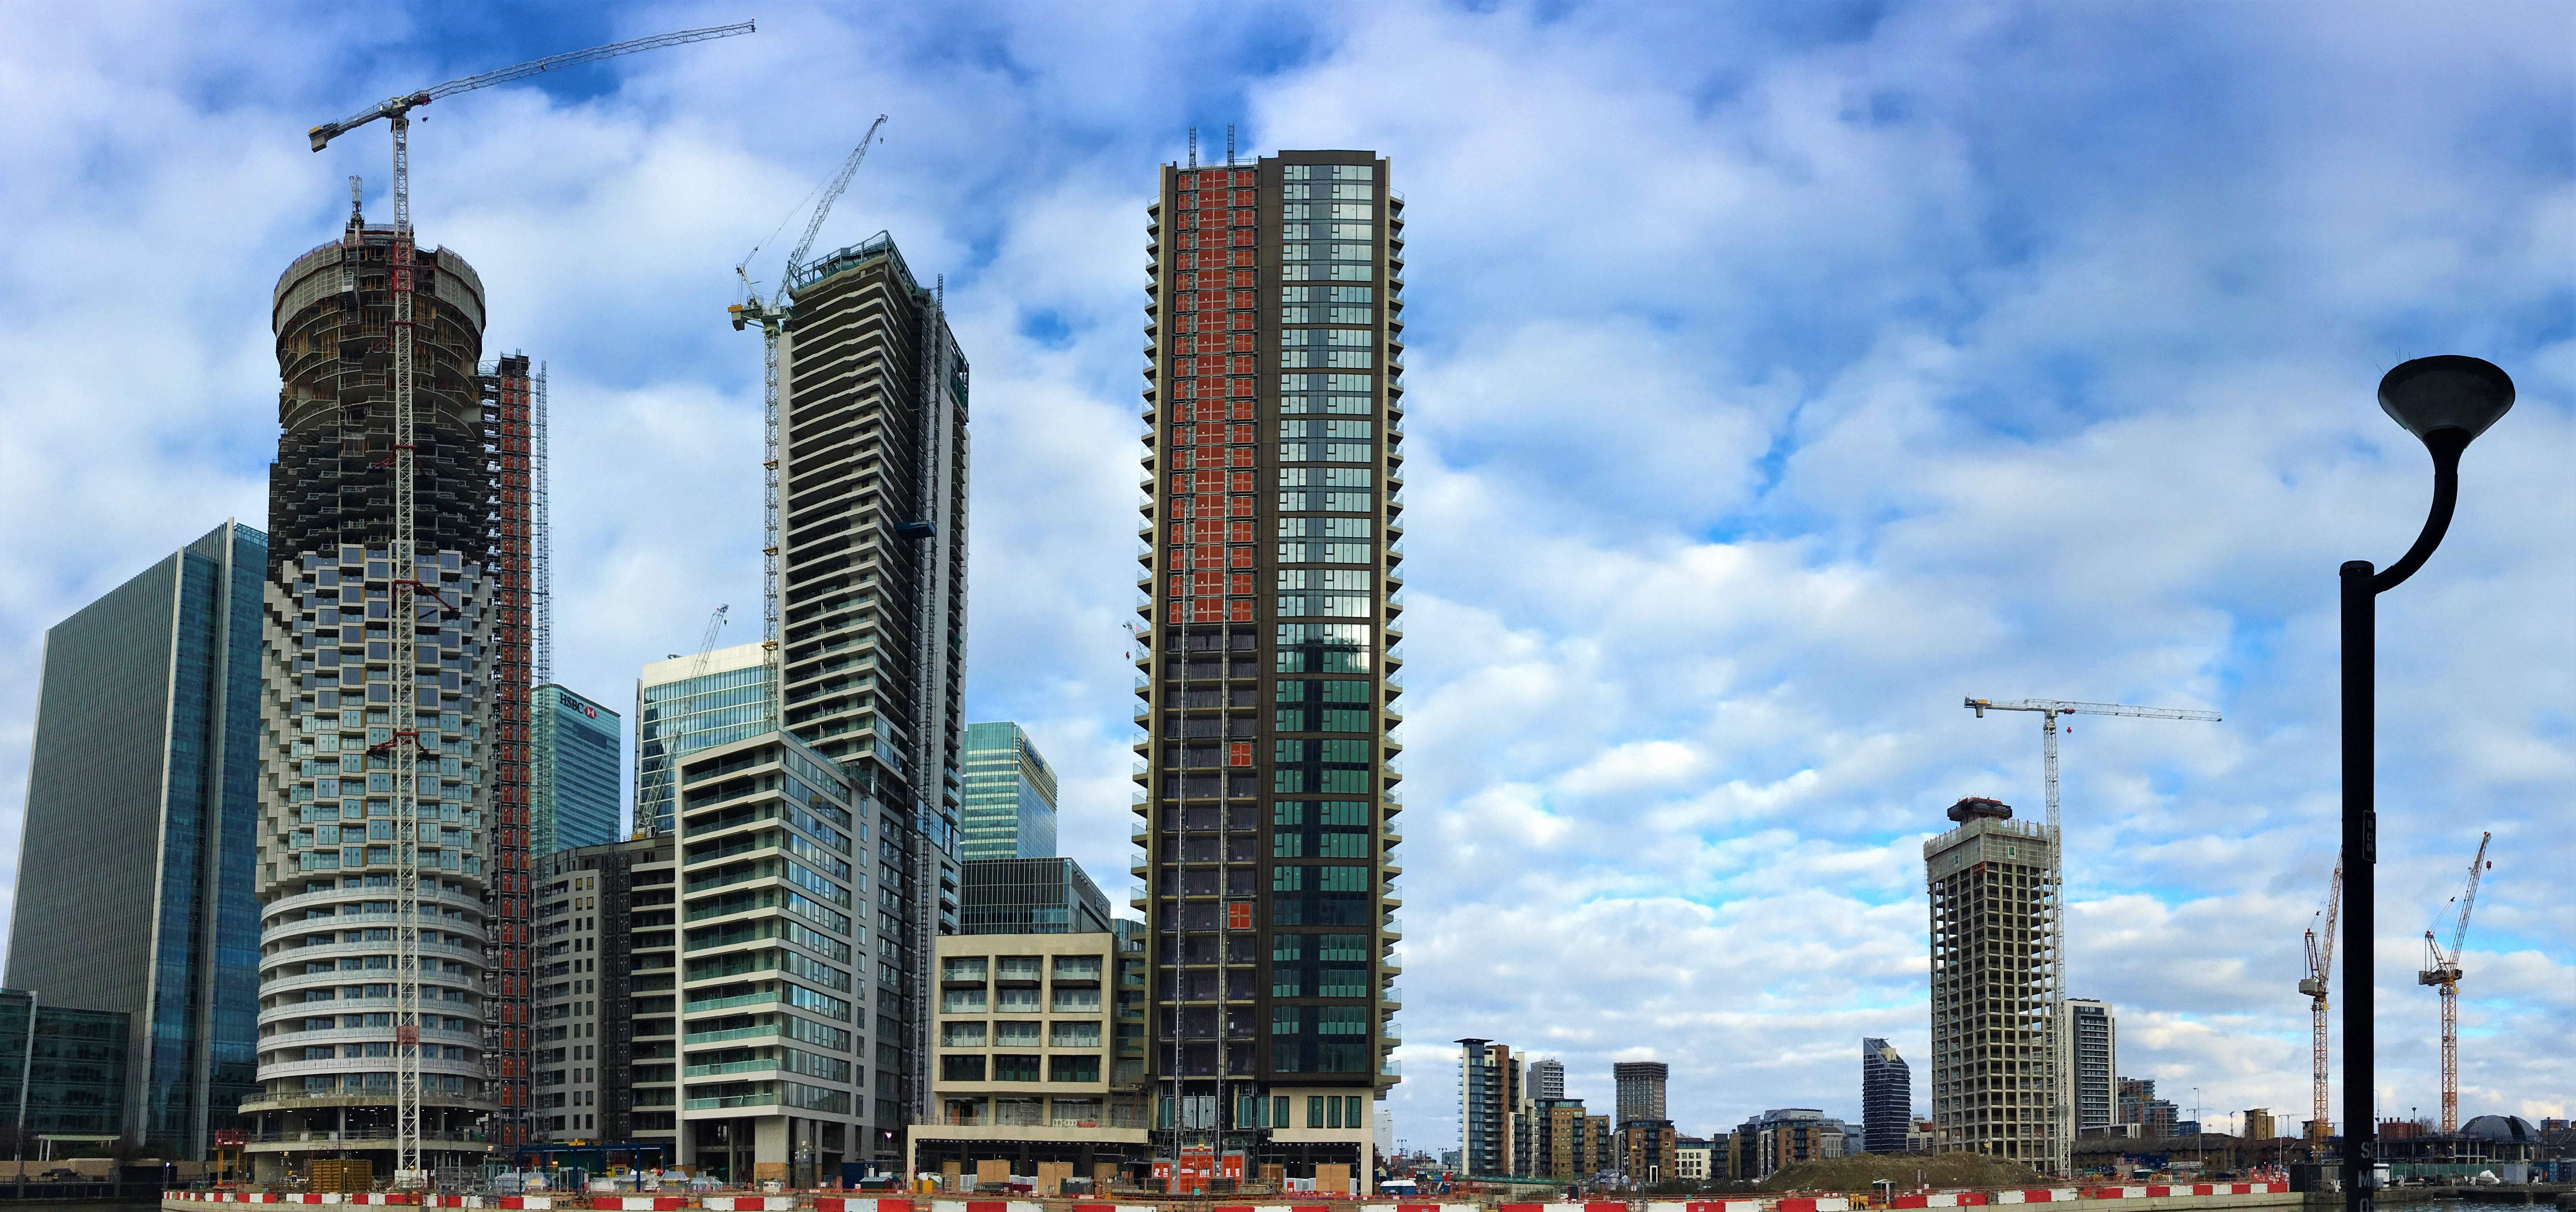 Wood Wharf as seen from South Quay Plaza